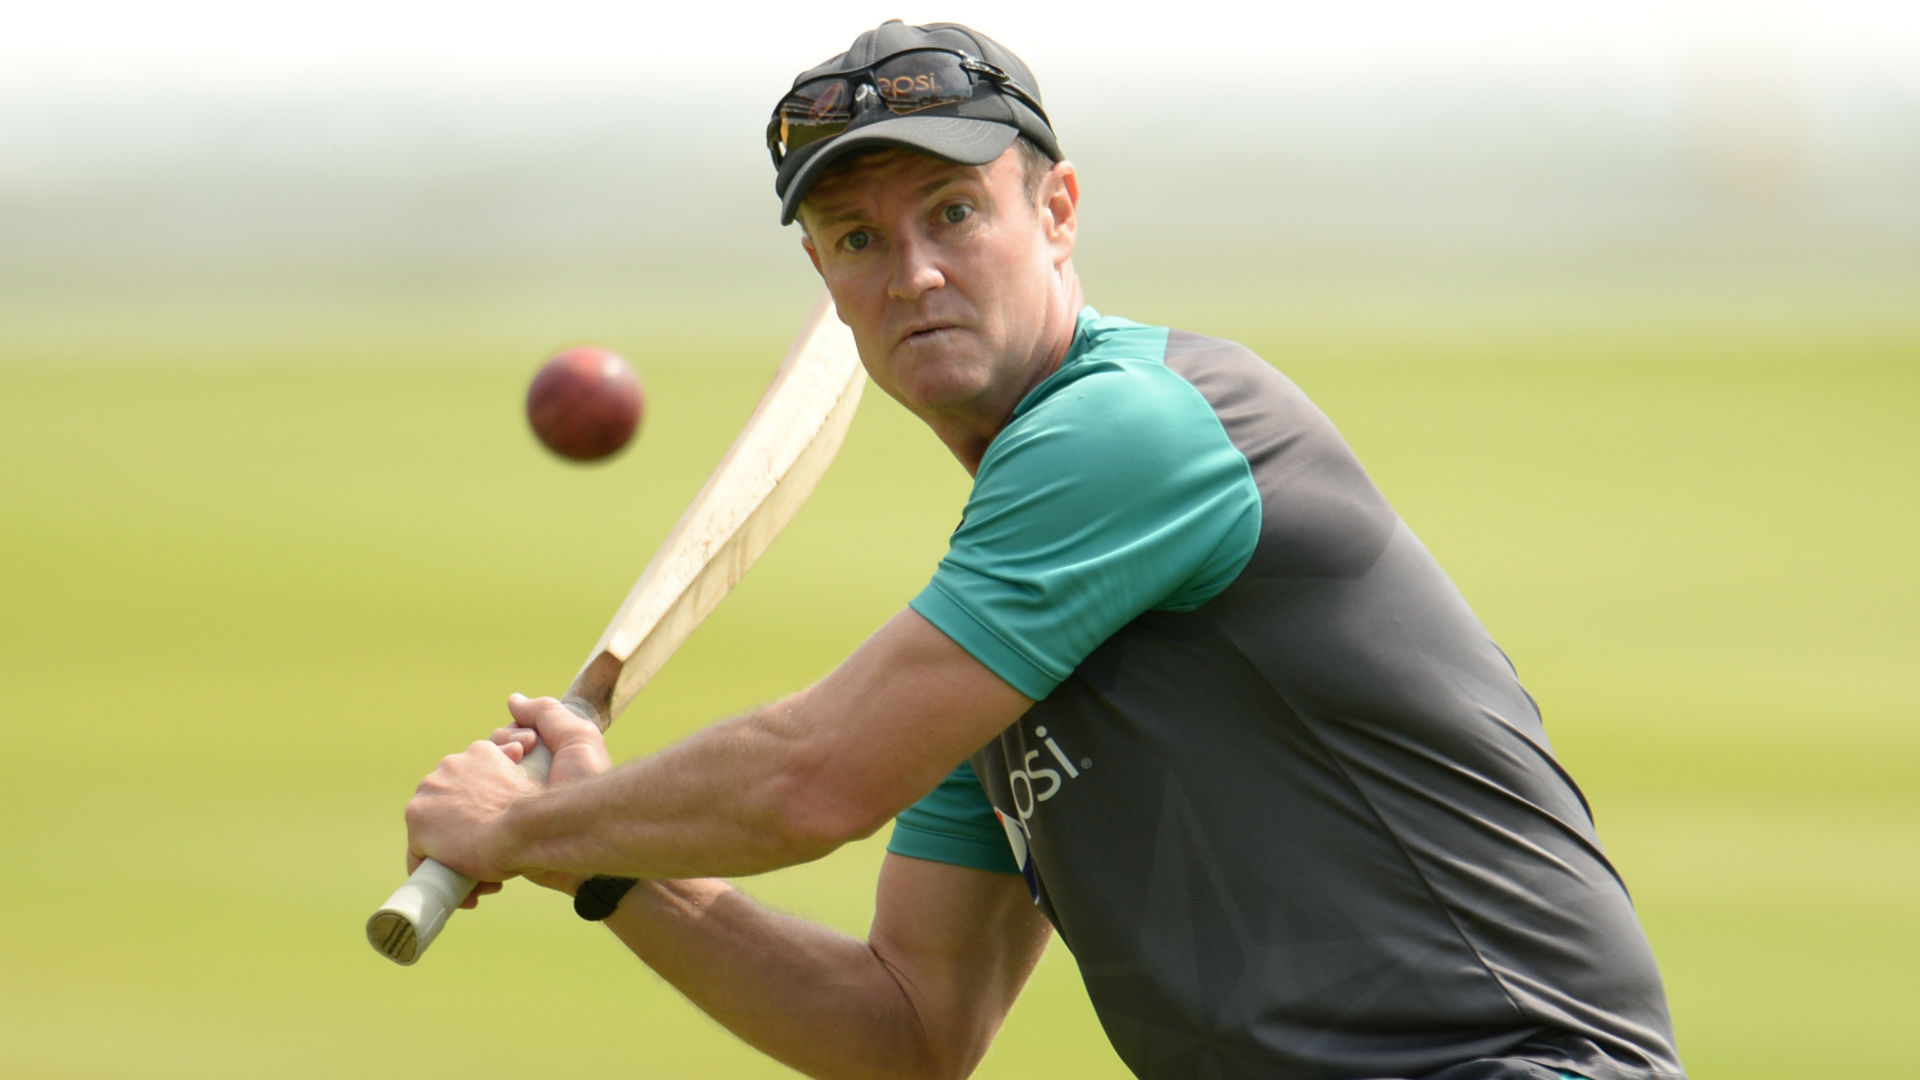 Batting coach Grant Flower feels Sri Lanka have the potential to be a force at the T20 World Cup in Australia.